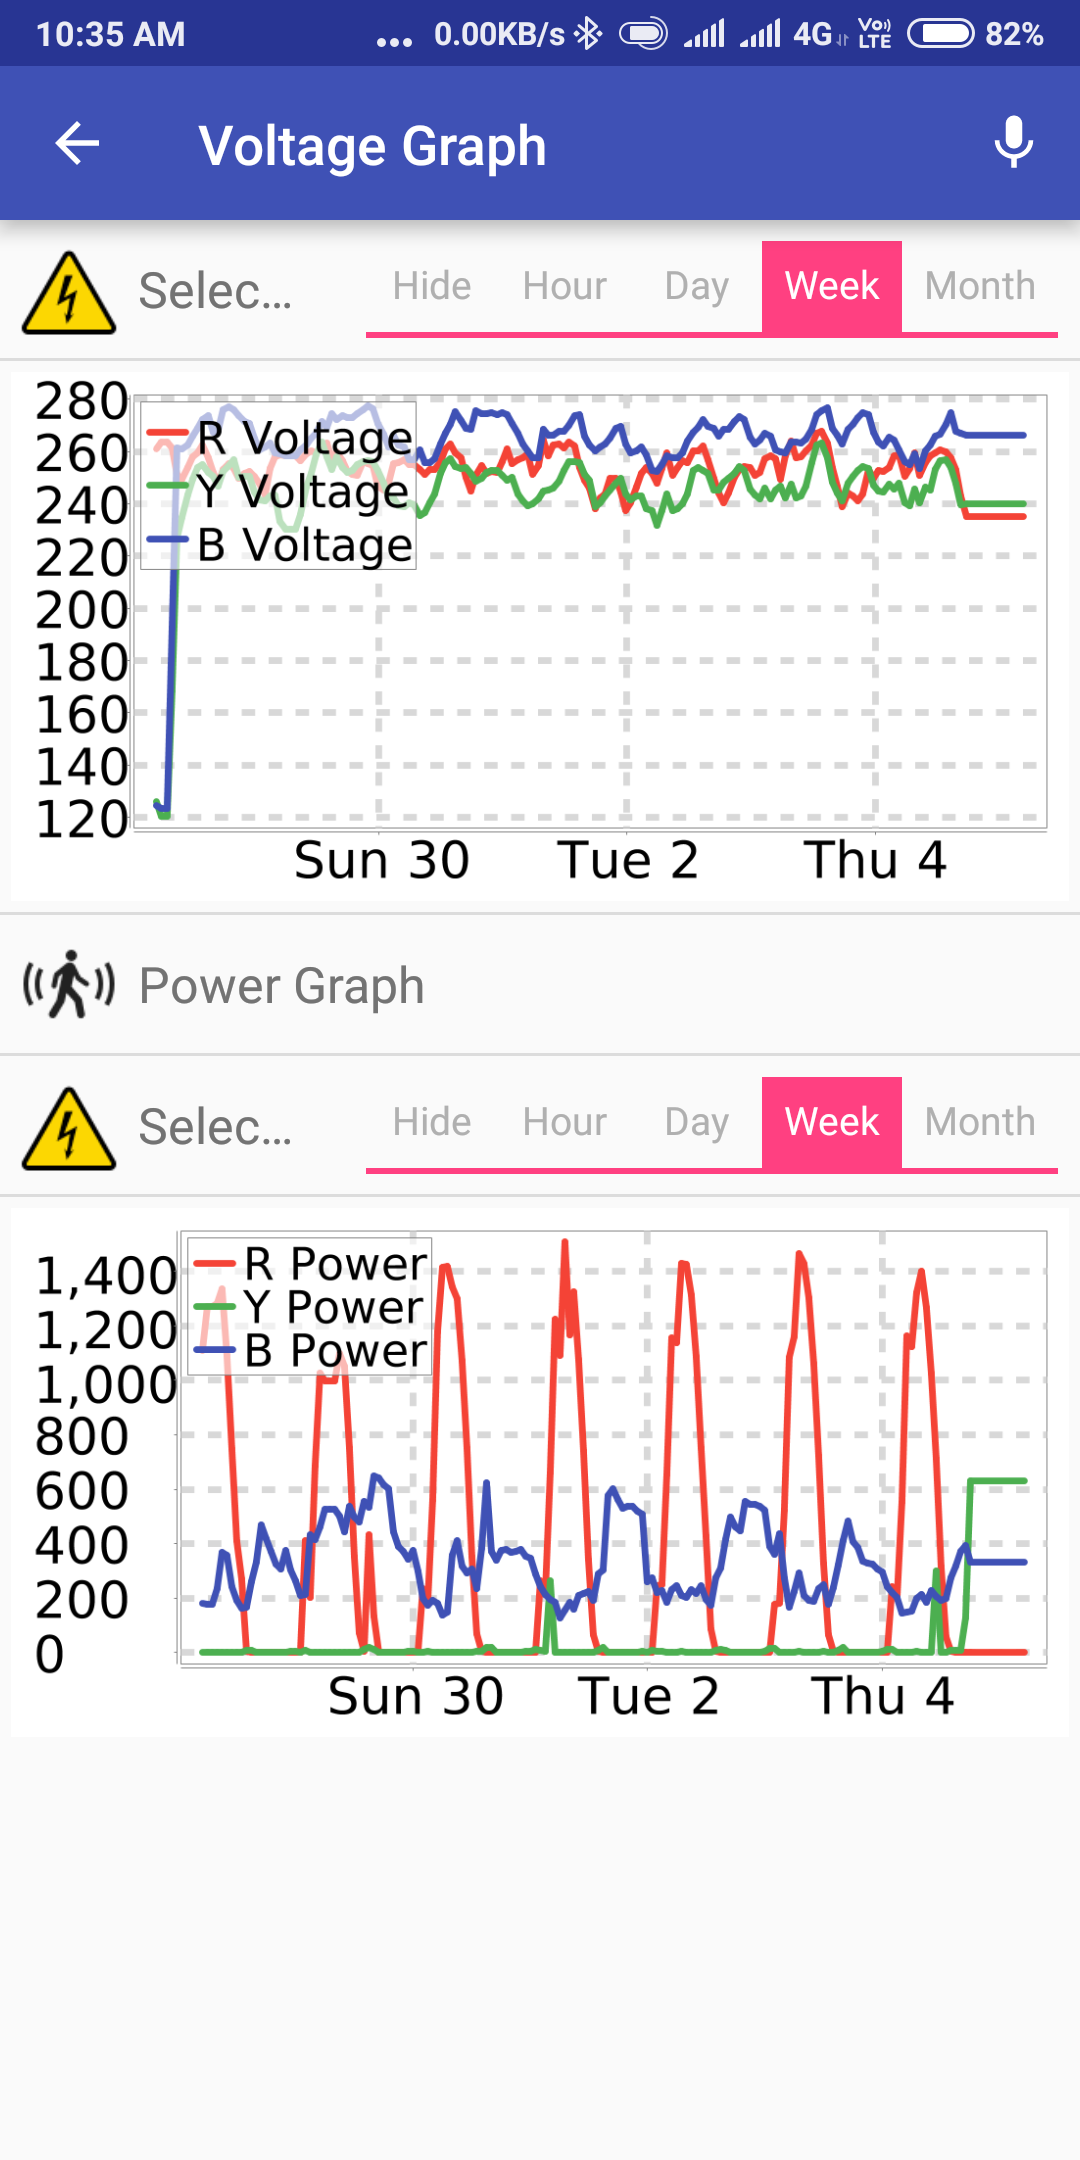 Adding support for PZEM004T energy monitor for 3 phase - request